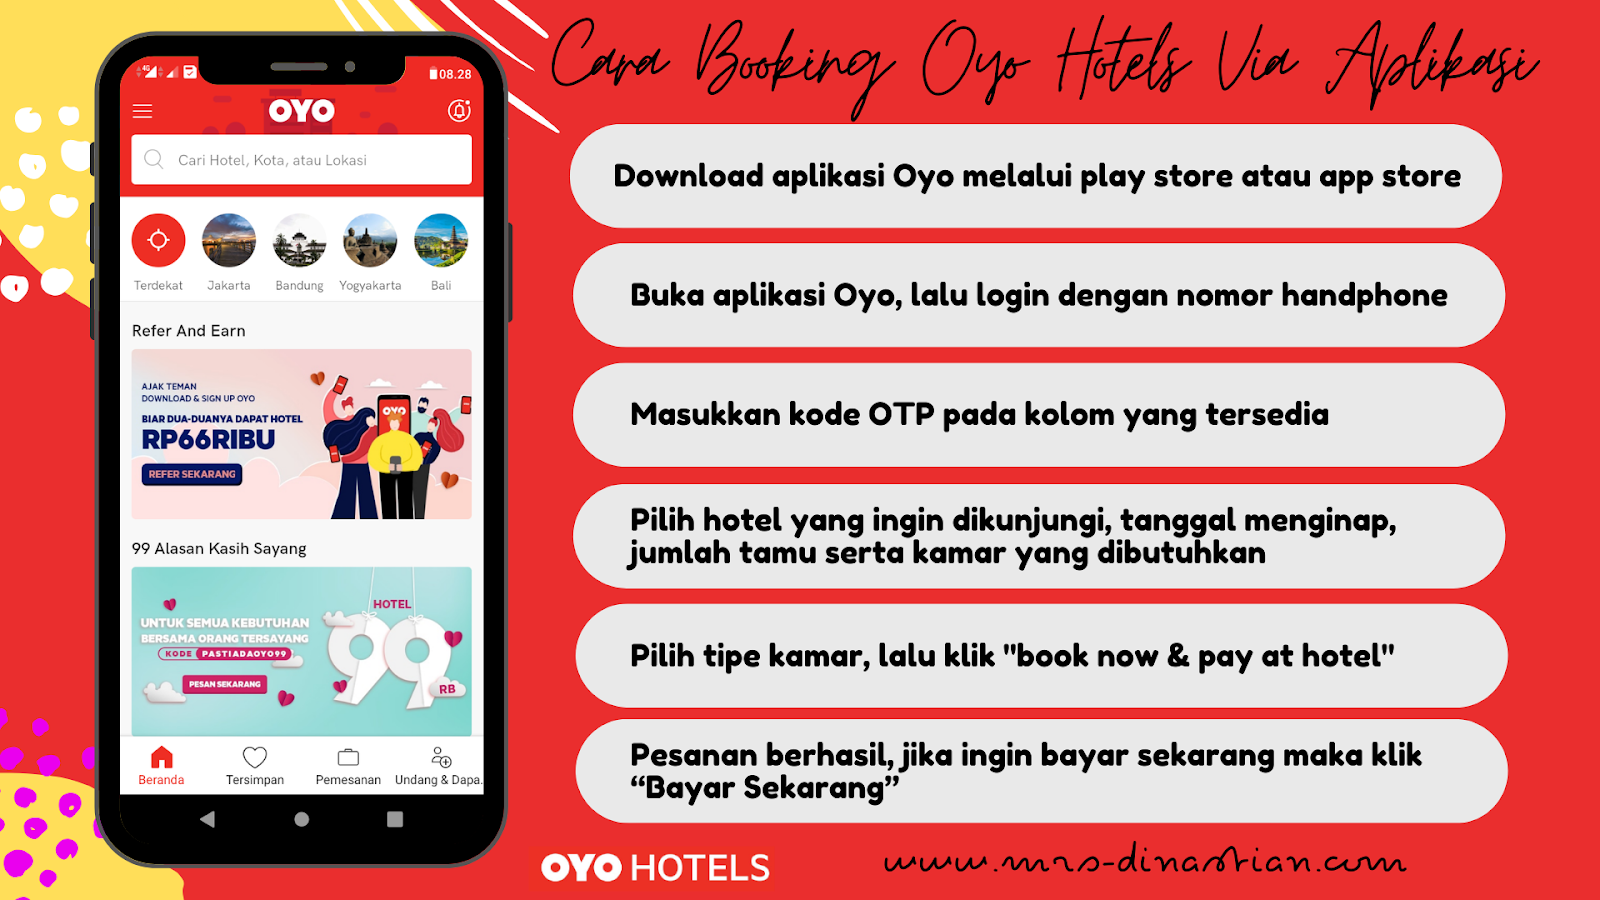 Cara Booking Oyo Hotels